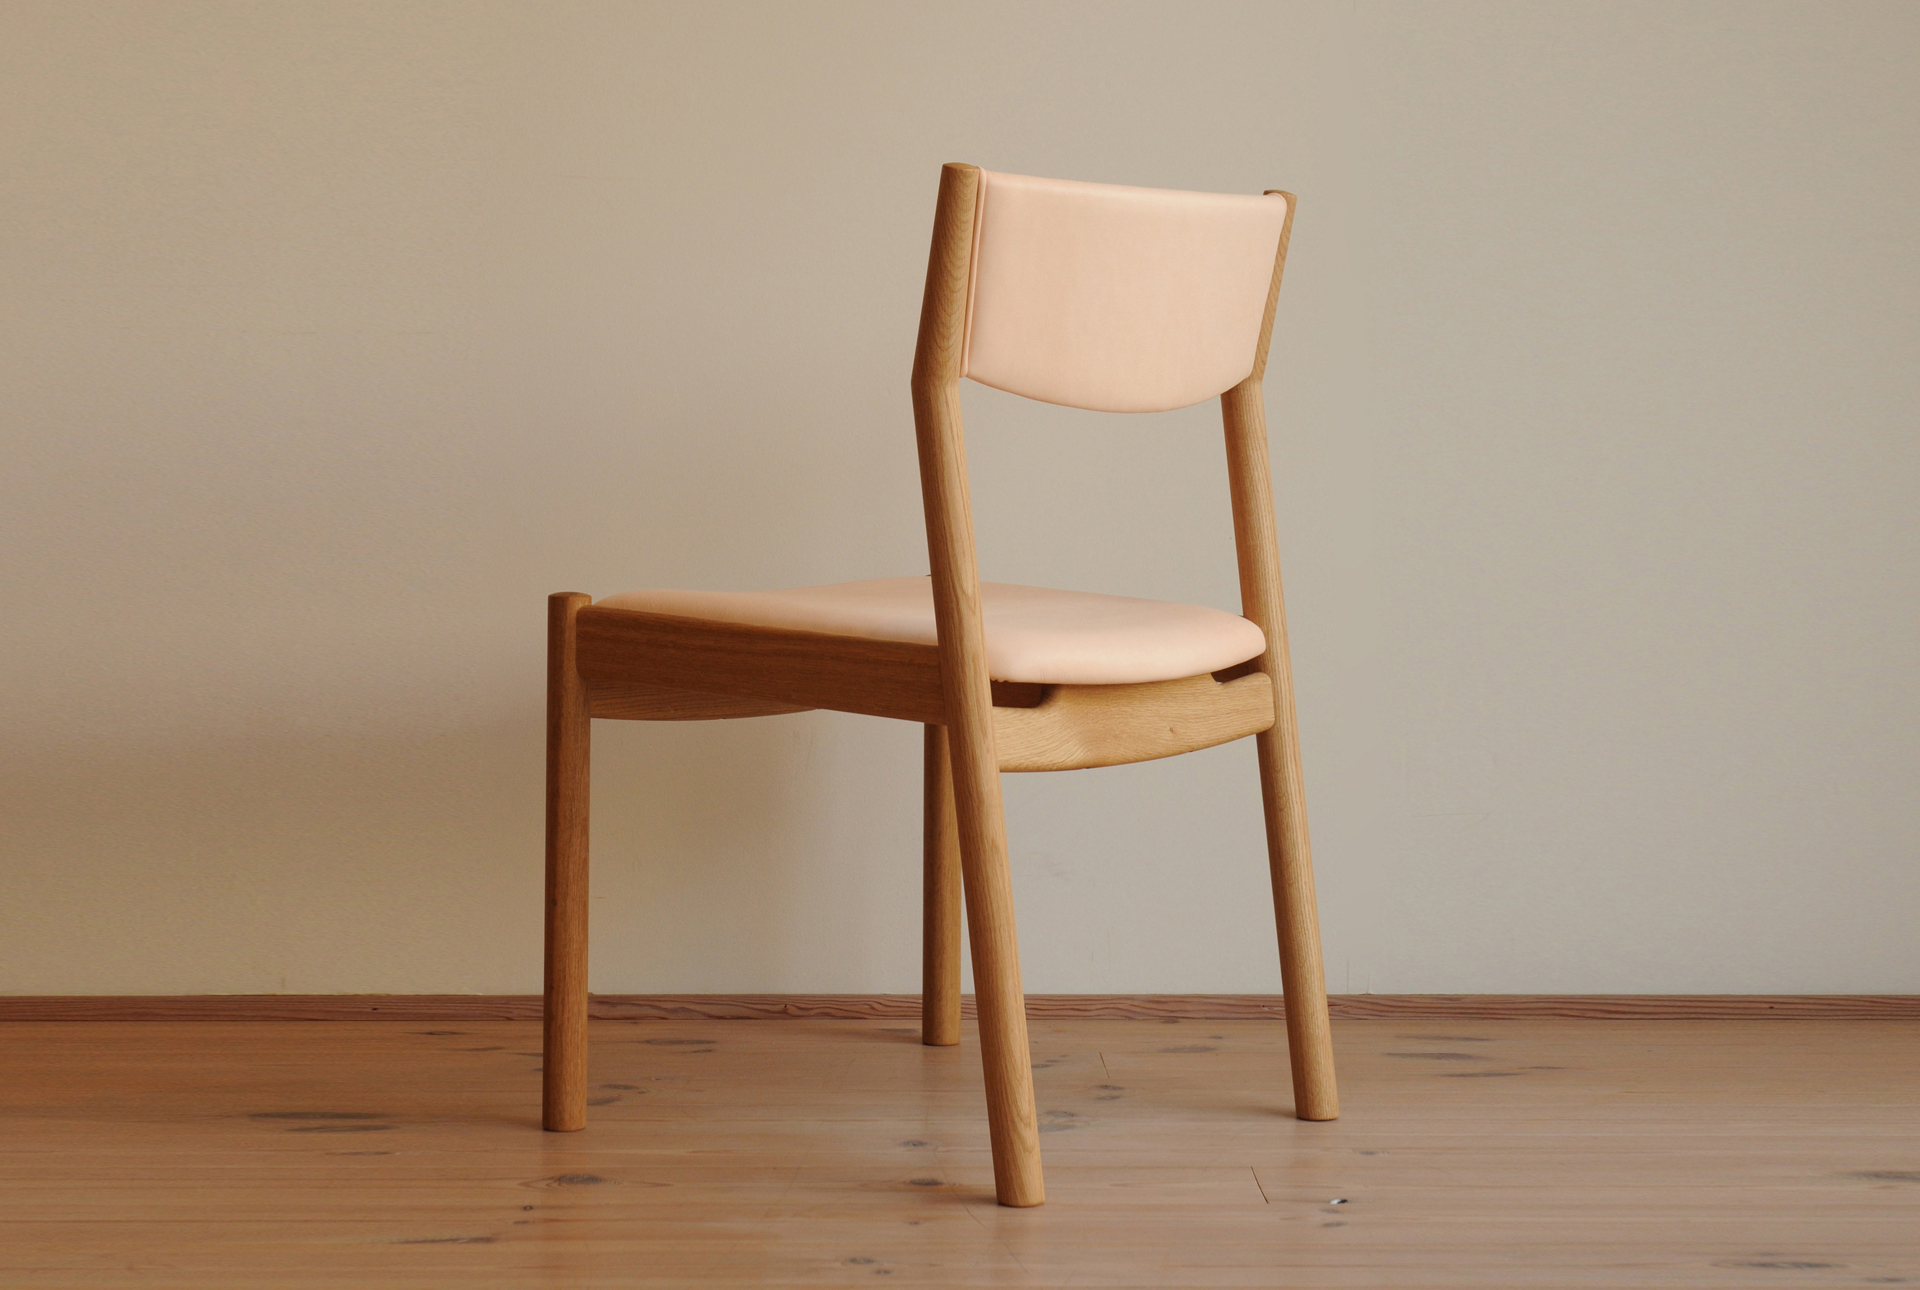 Japanese Chair 02